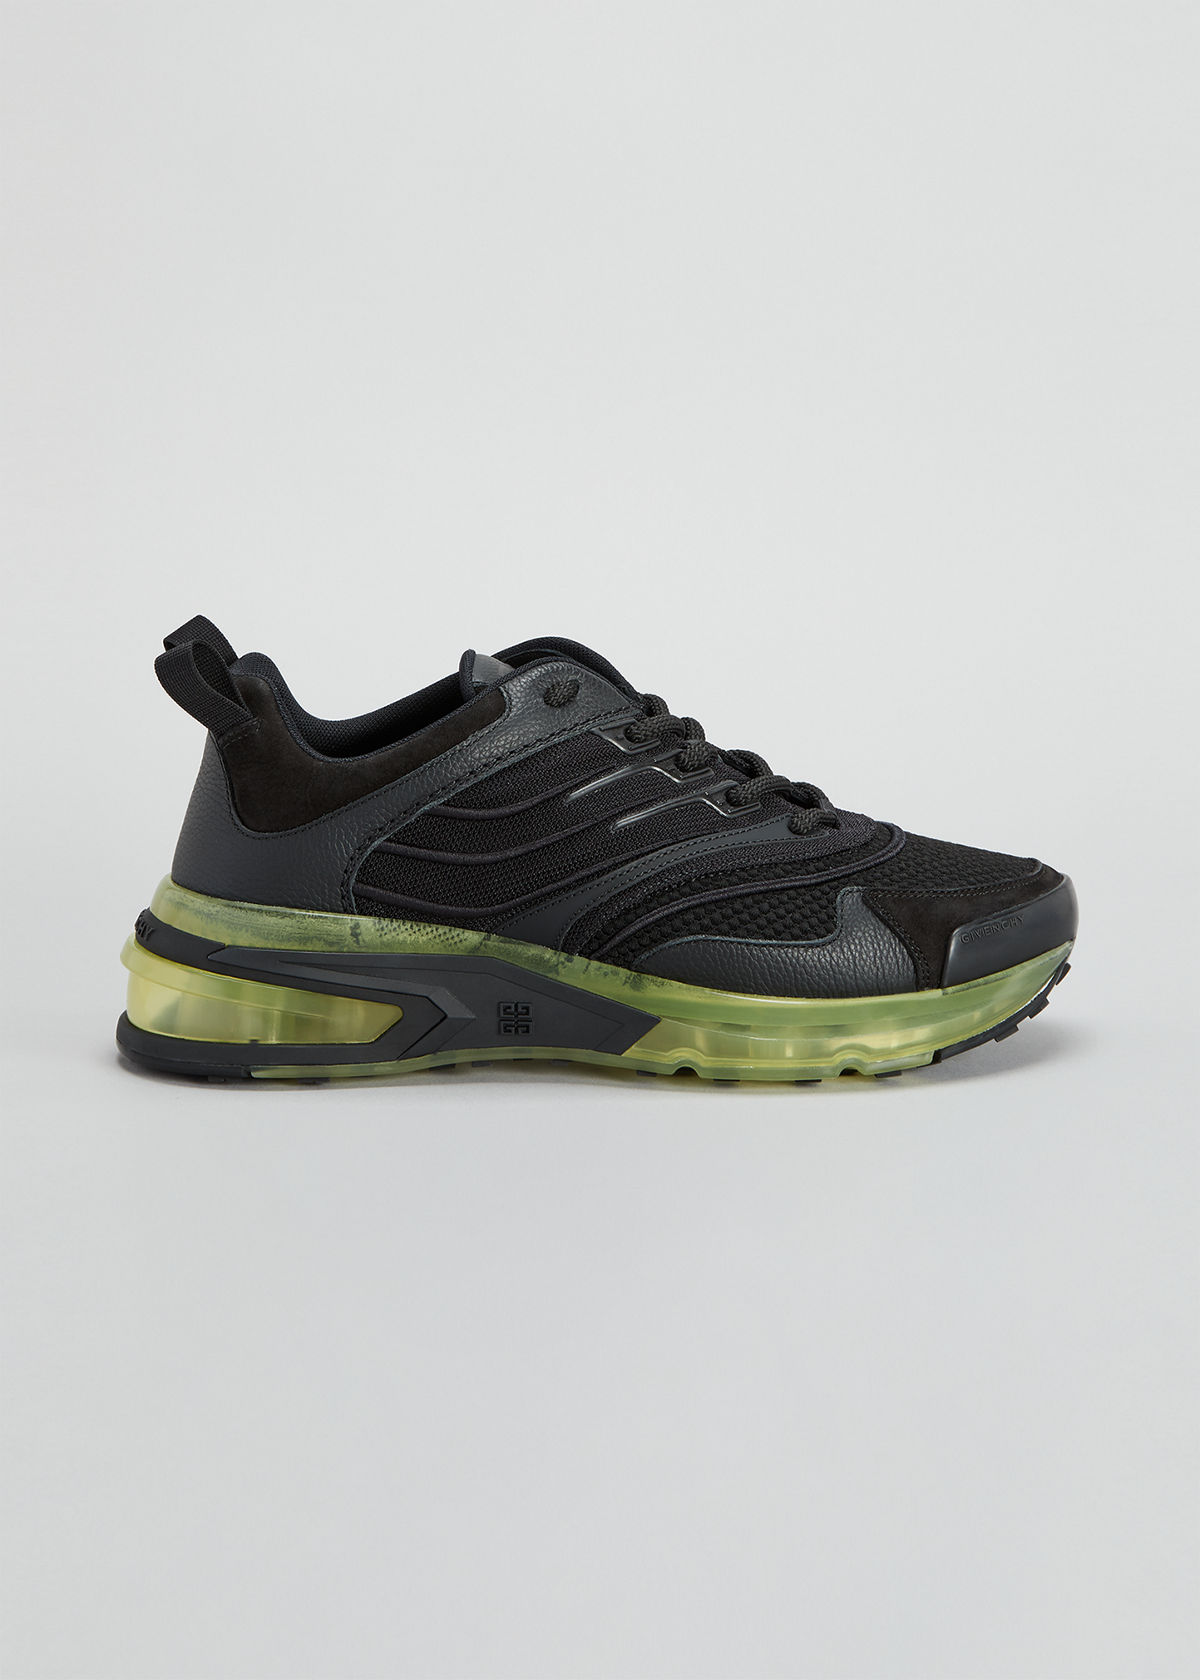 Givenchy MIXED LEATHER TRANSPARENT-HEEL RUNNER SNEAKERS